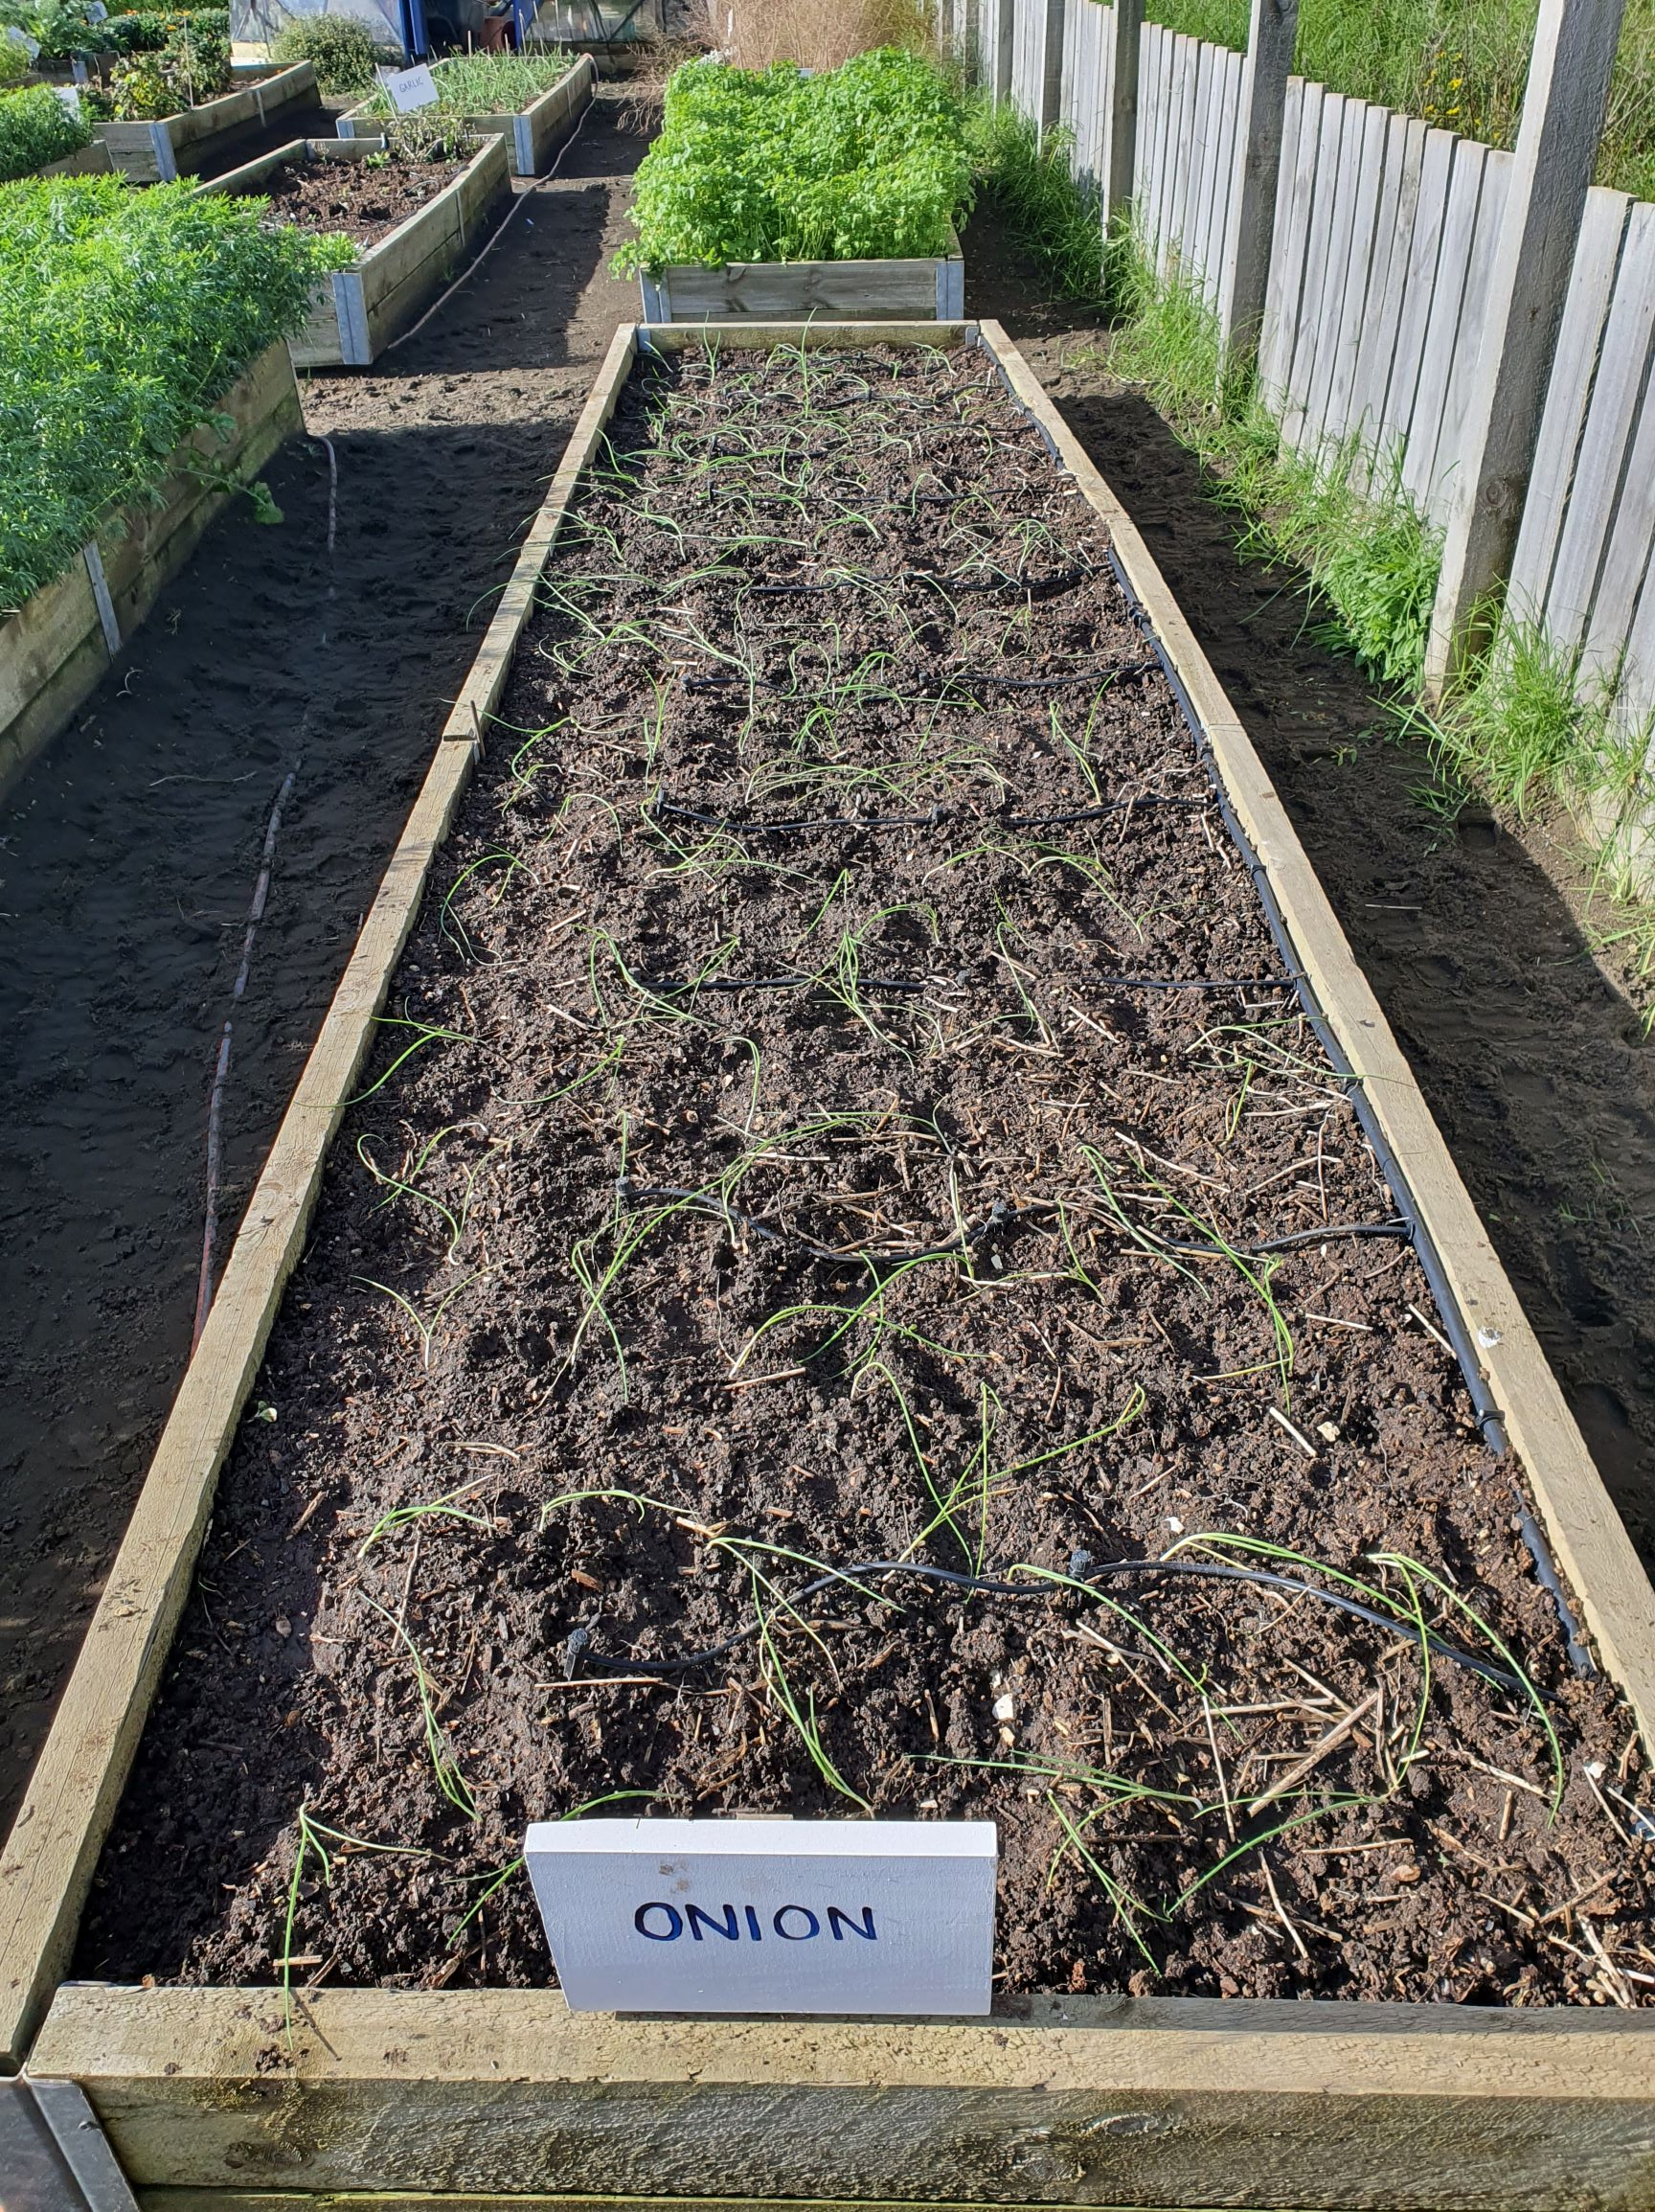 Onion bed planted